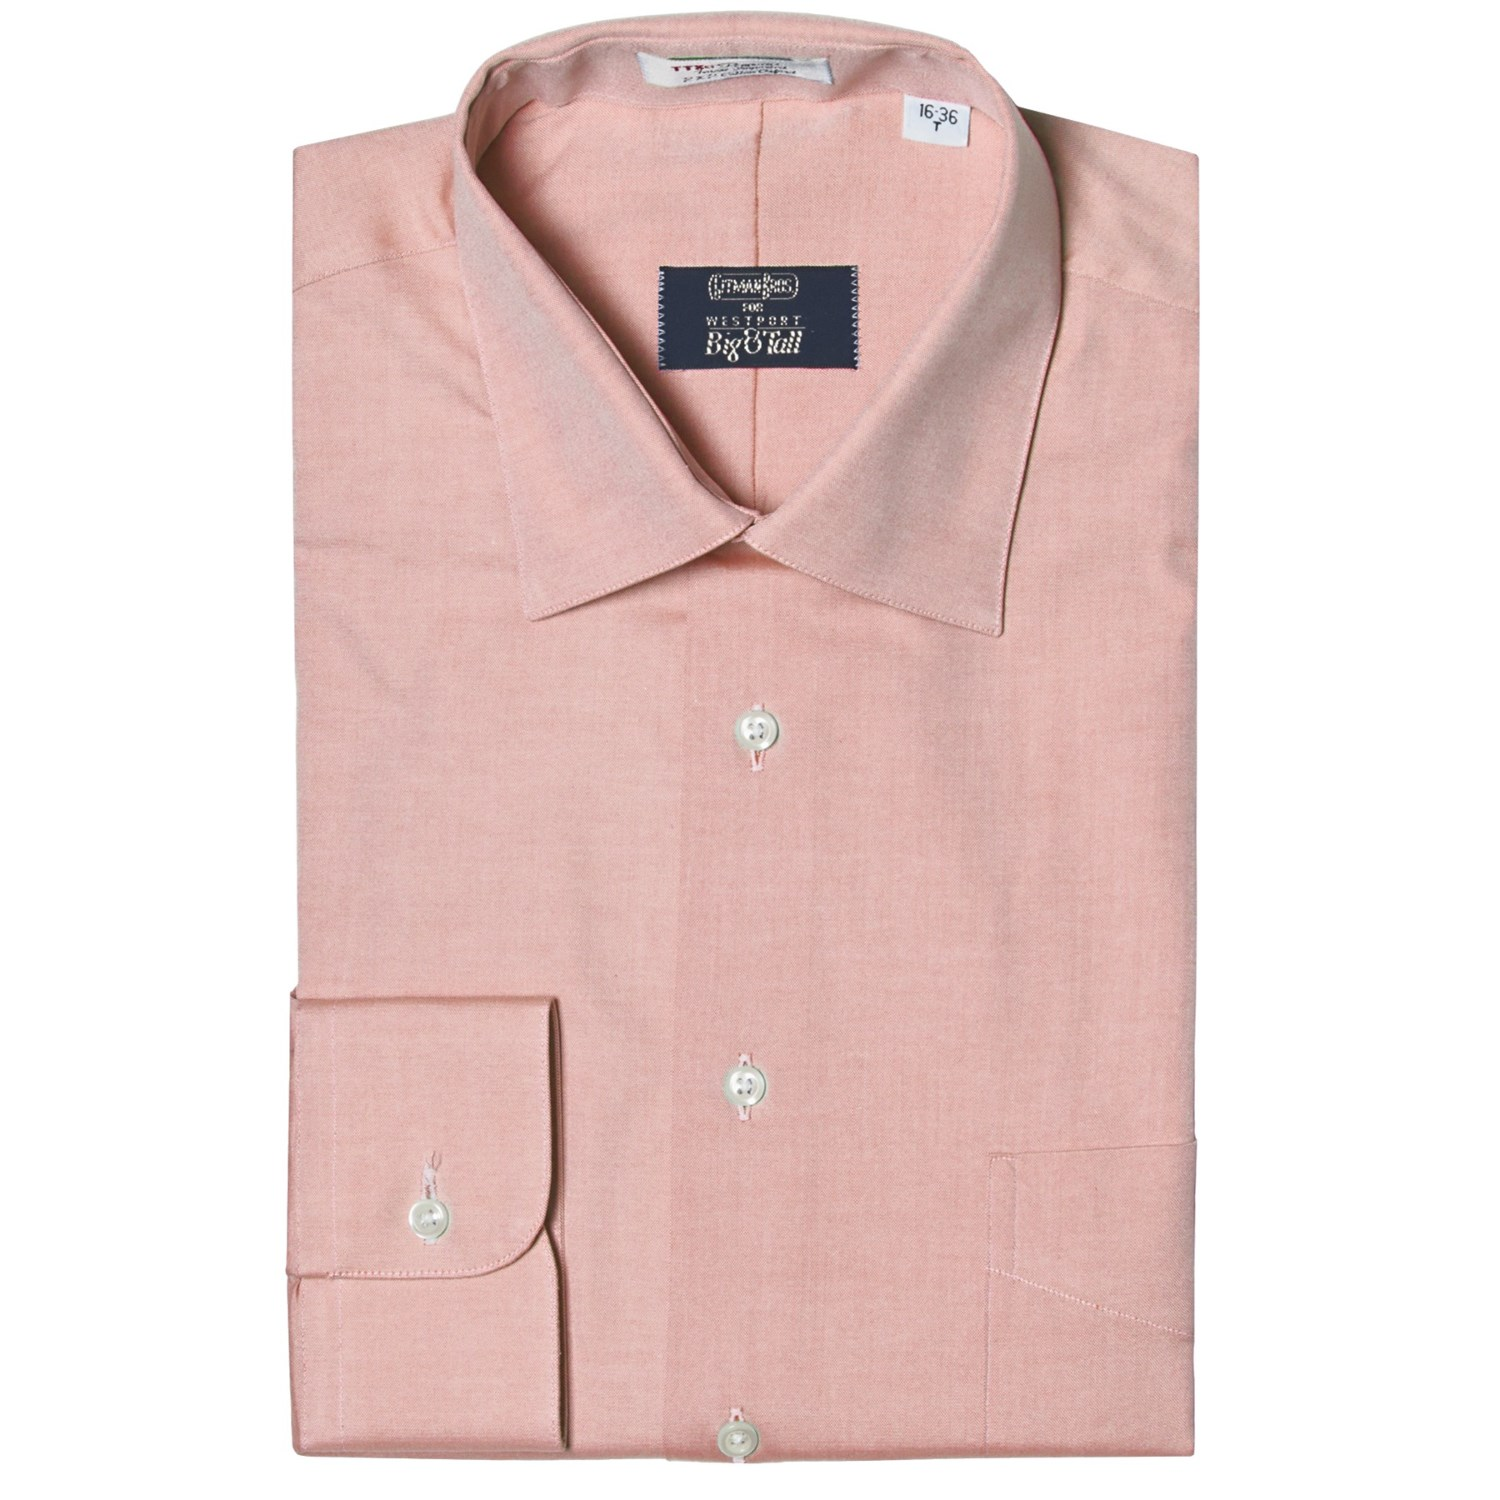 Westport solid dress shirt spread collar long sleeve for Dress shirts for big and tall